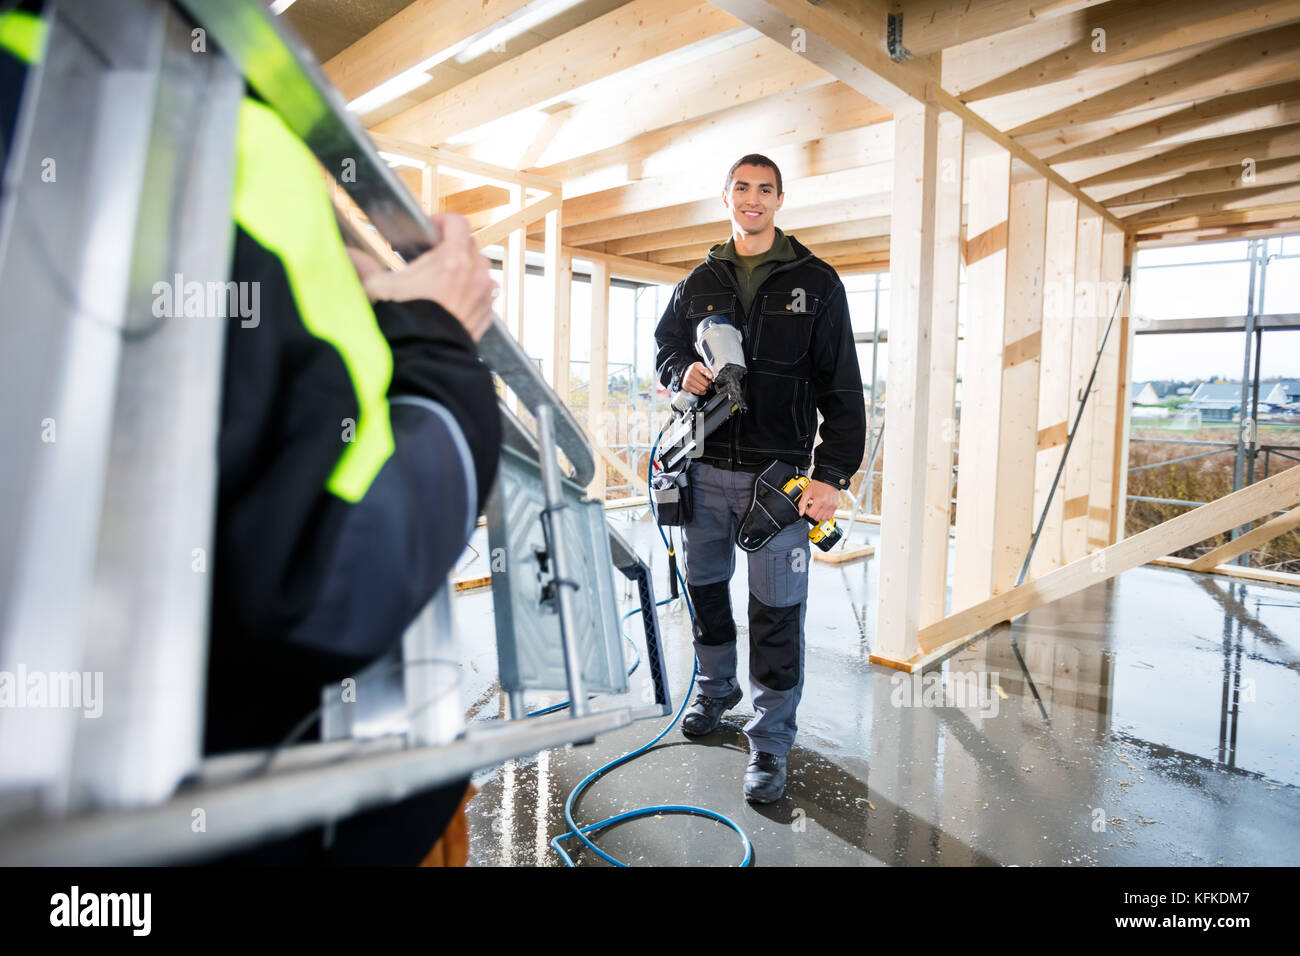 Carpenter Smiling While Female Colleague Carrying Ladder At Site - Stock Image